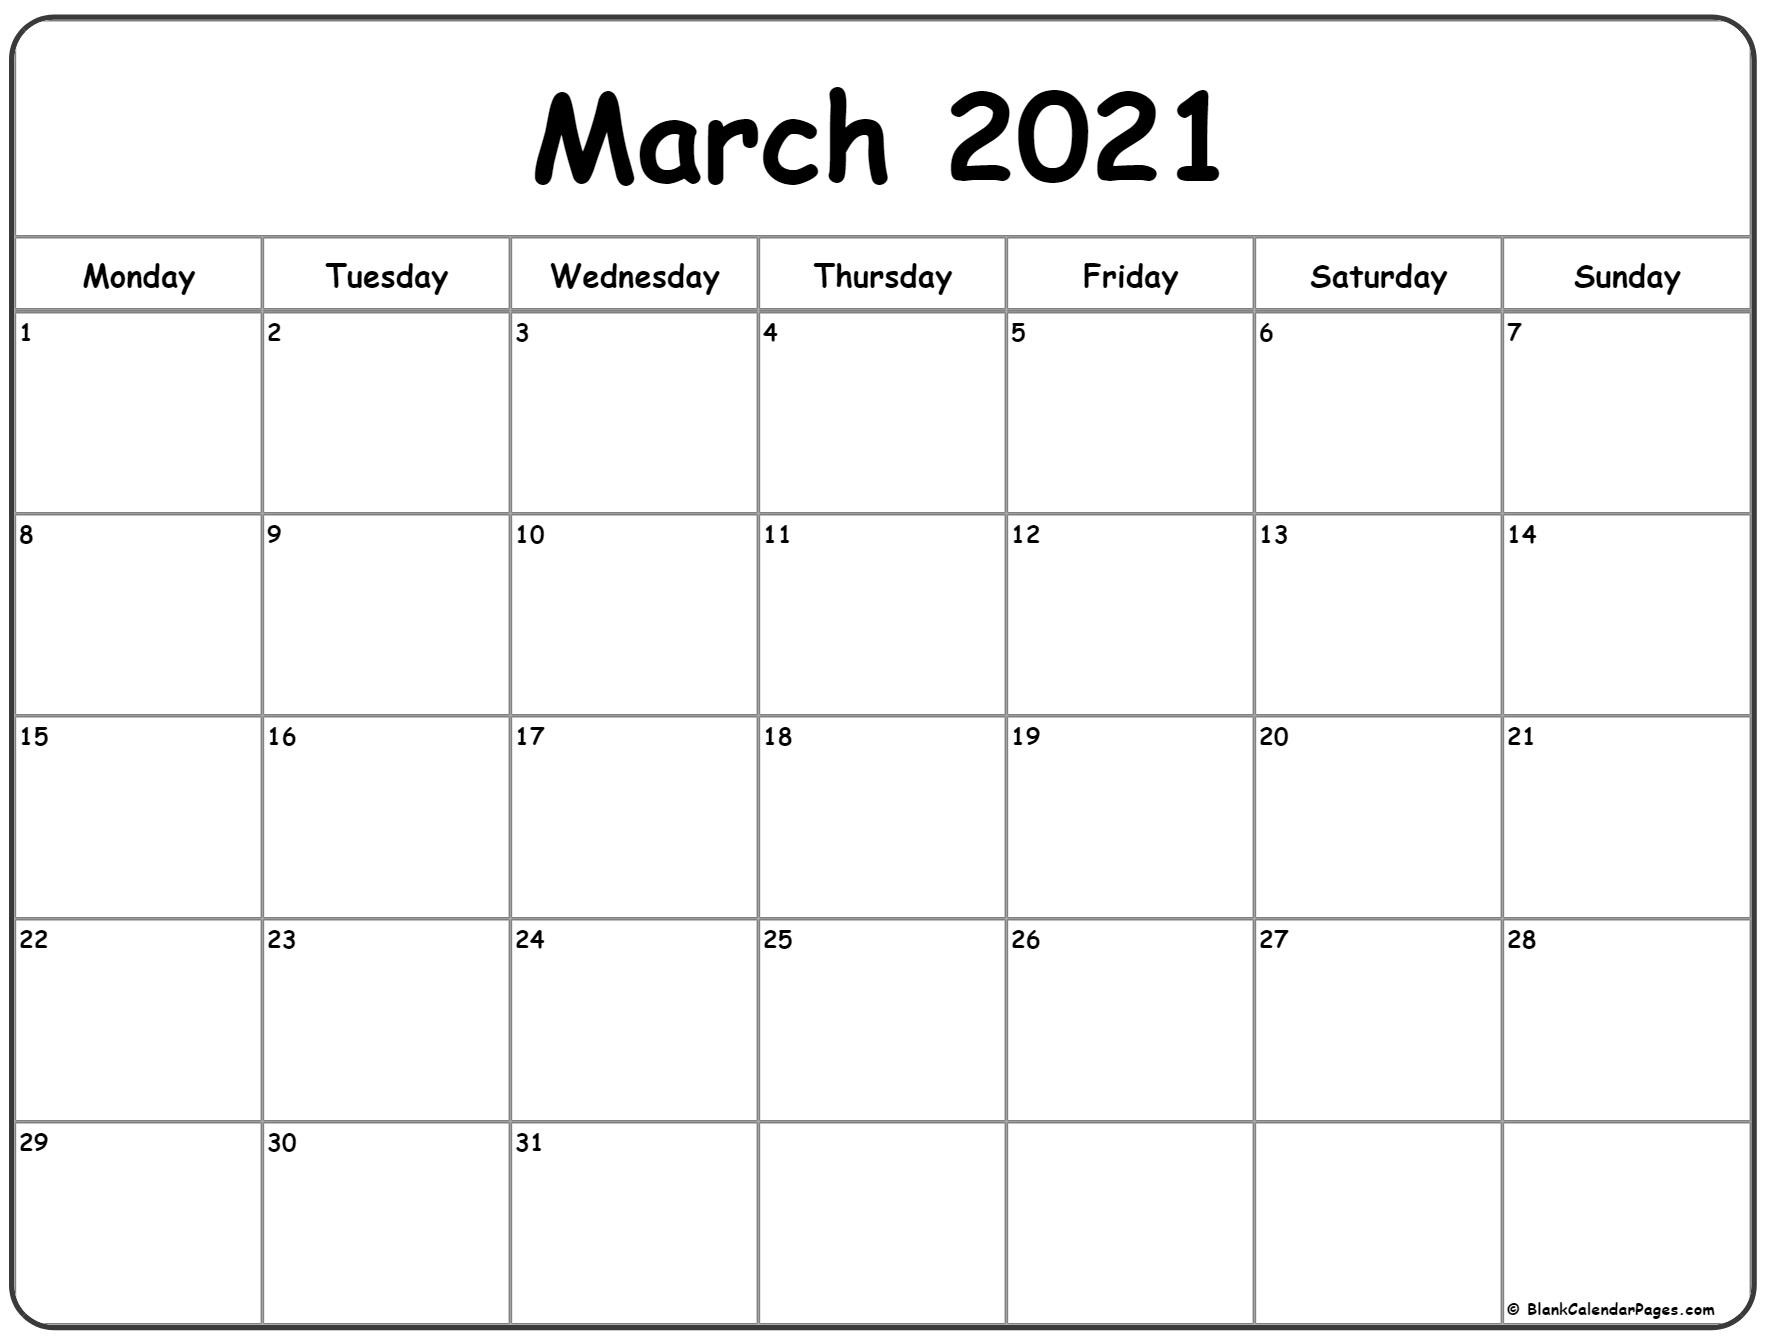 March 2021 Monday Calendar | Monday To Sunday-2021 Calendar To Fill In